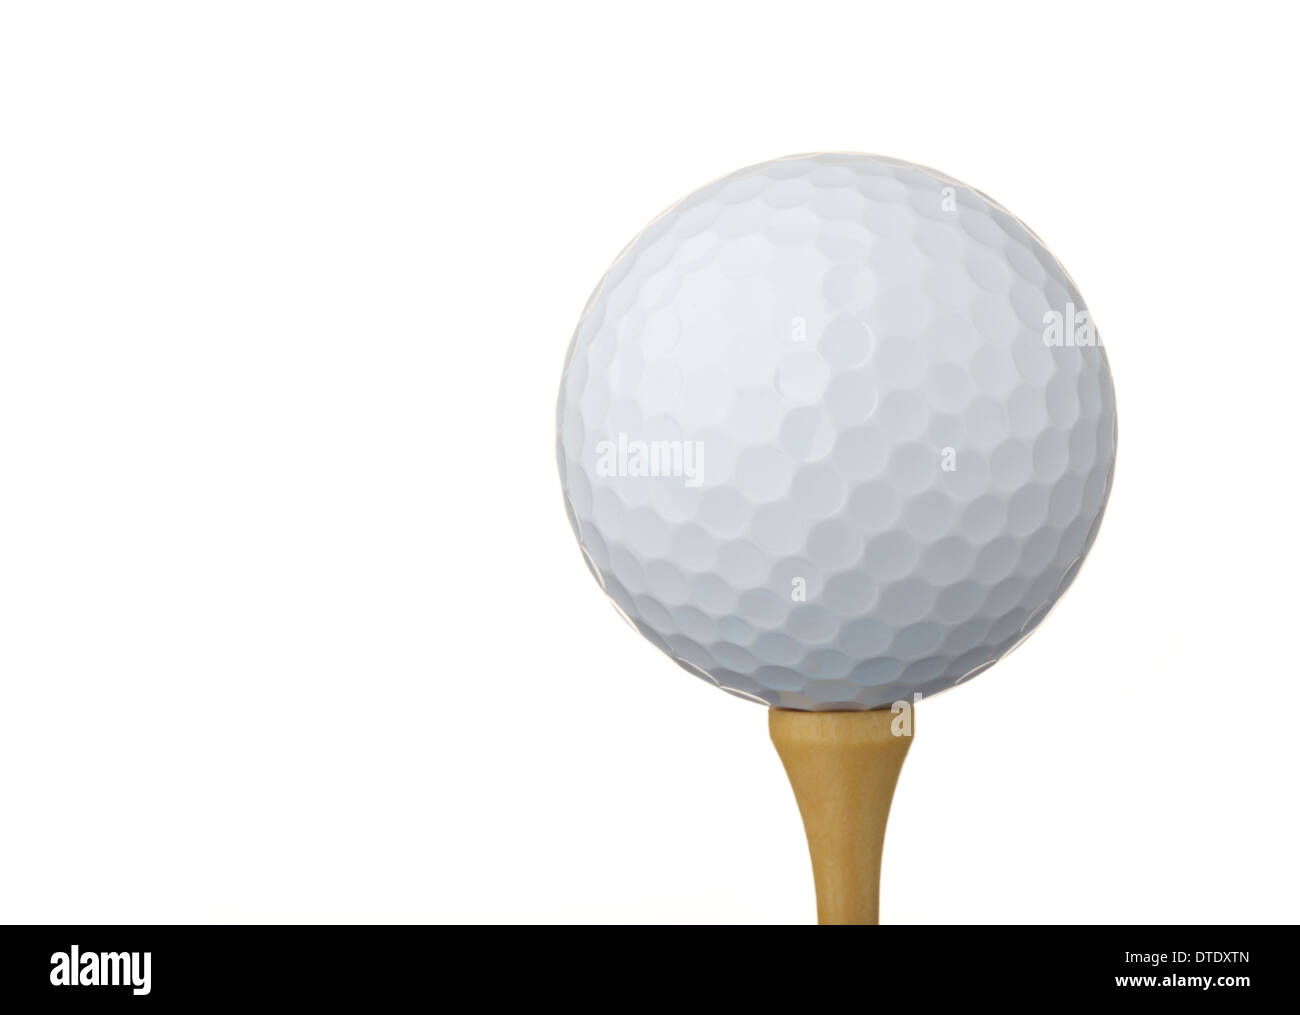 Golf ball on a tee, isolated on white background - Stock Image